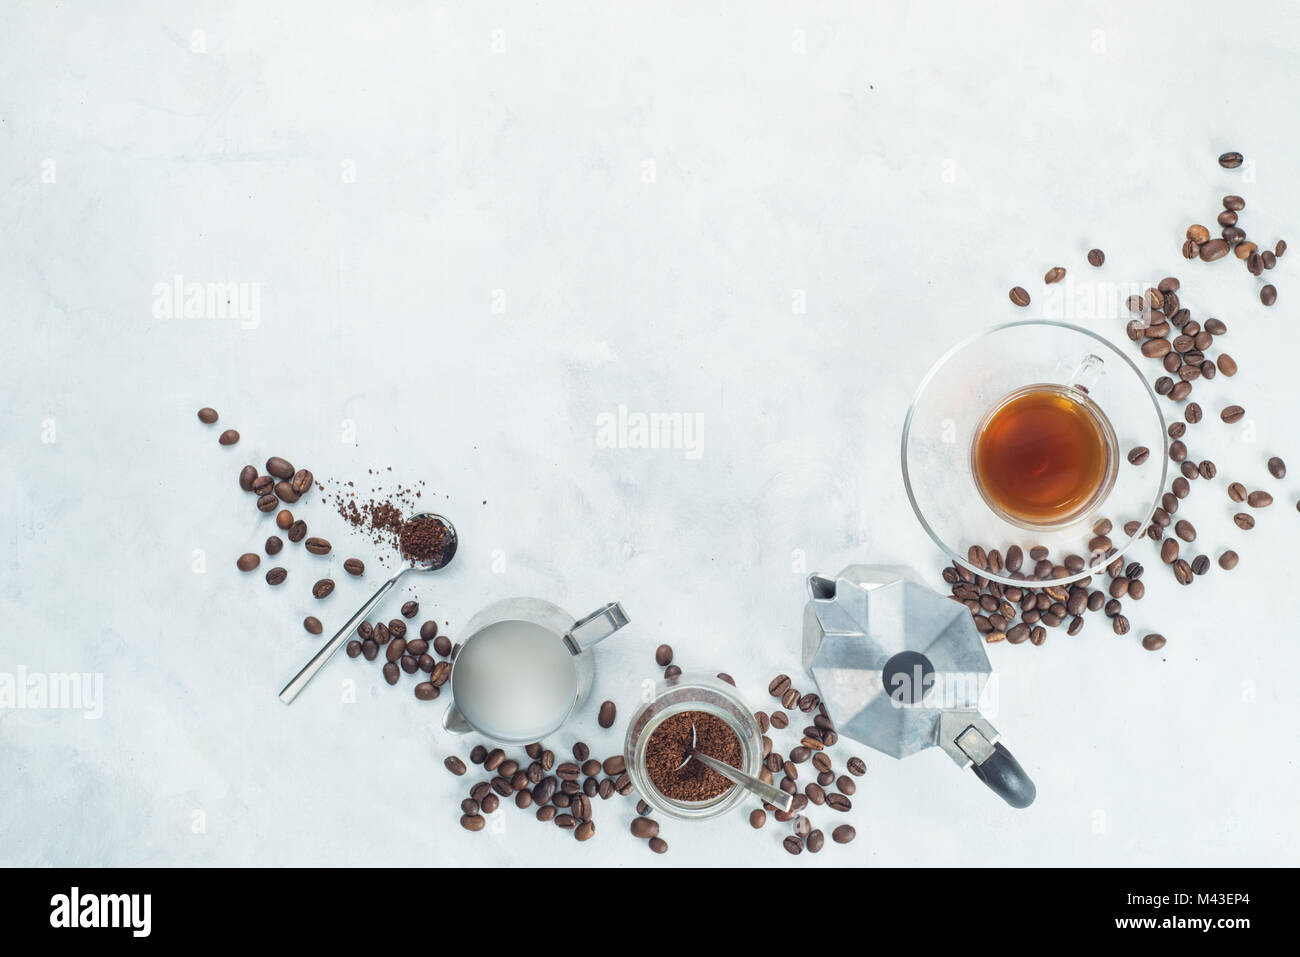 Header with brewing coffee ingredients. Moka pot, espresso cup, milk jug, ground coffee jar and coffee beans on - Stock Image